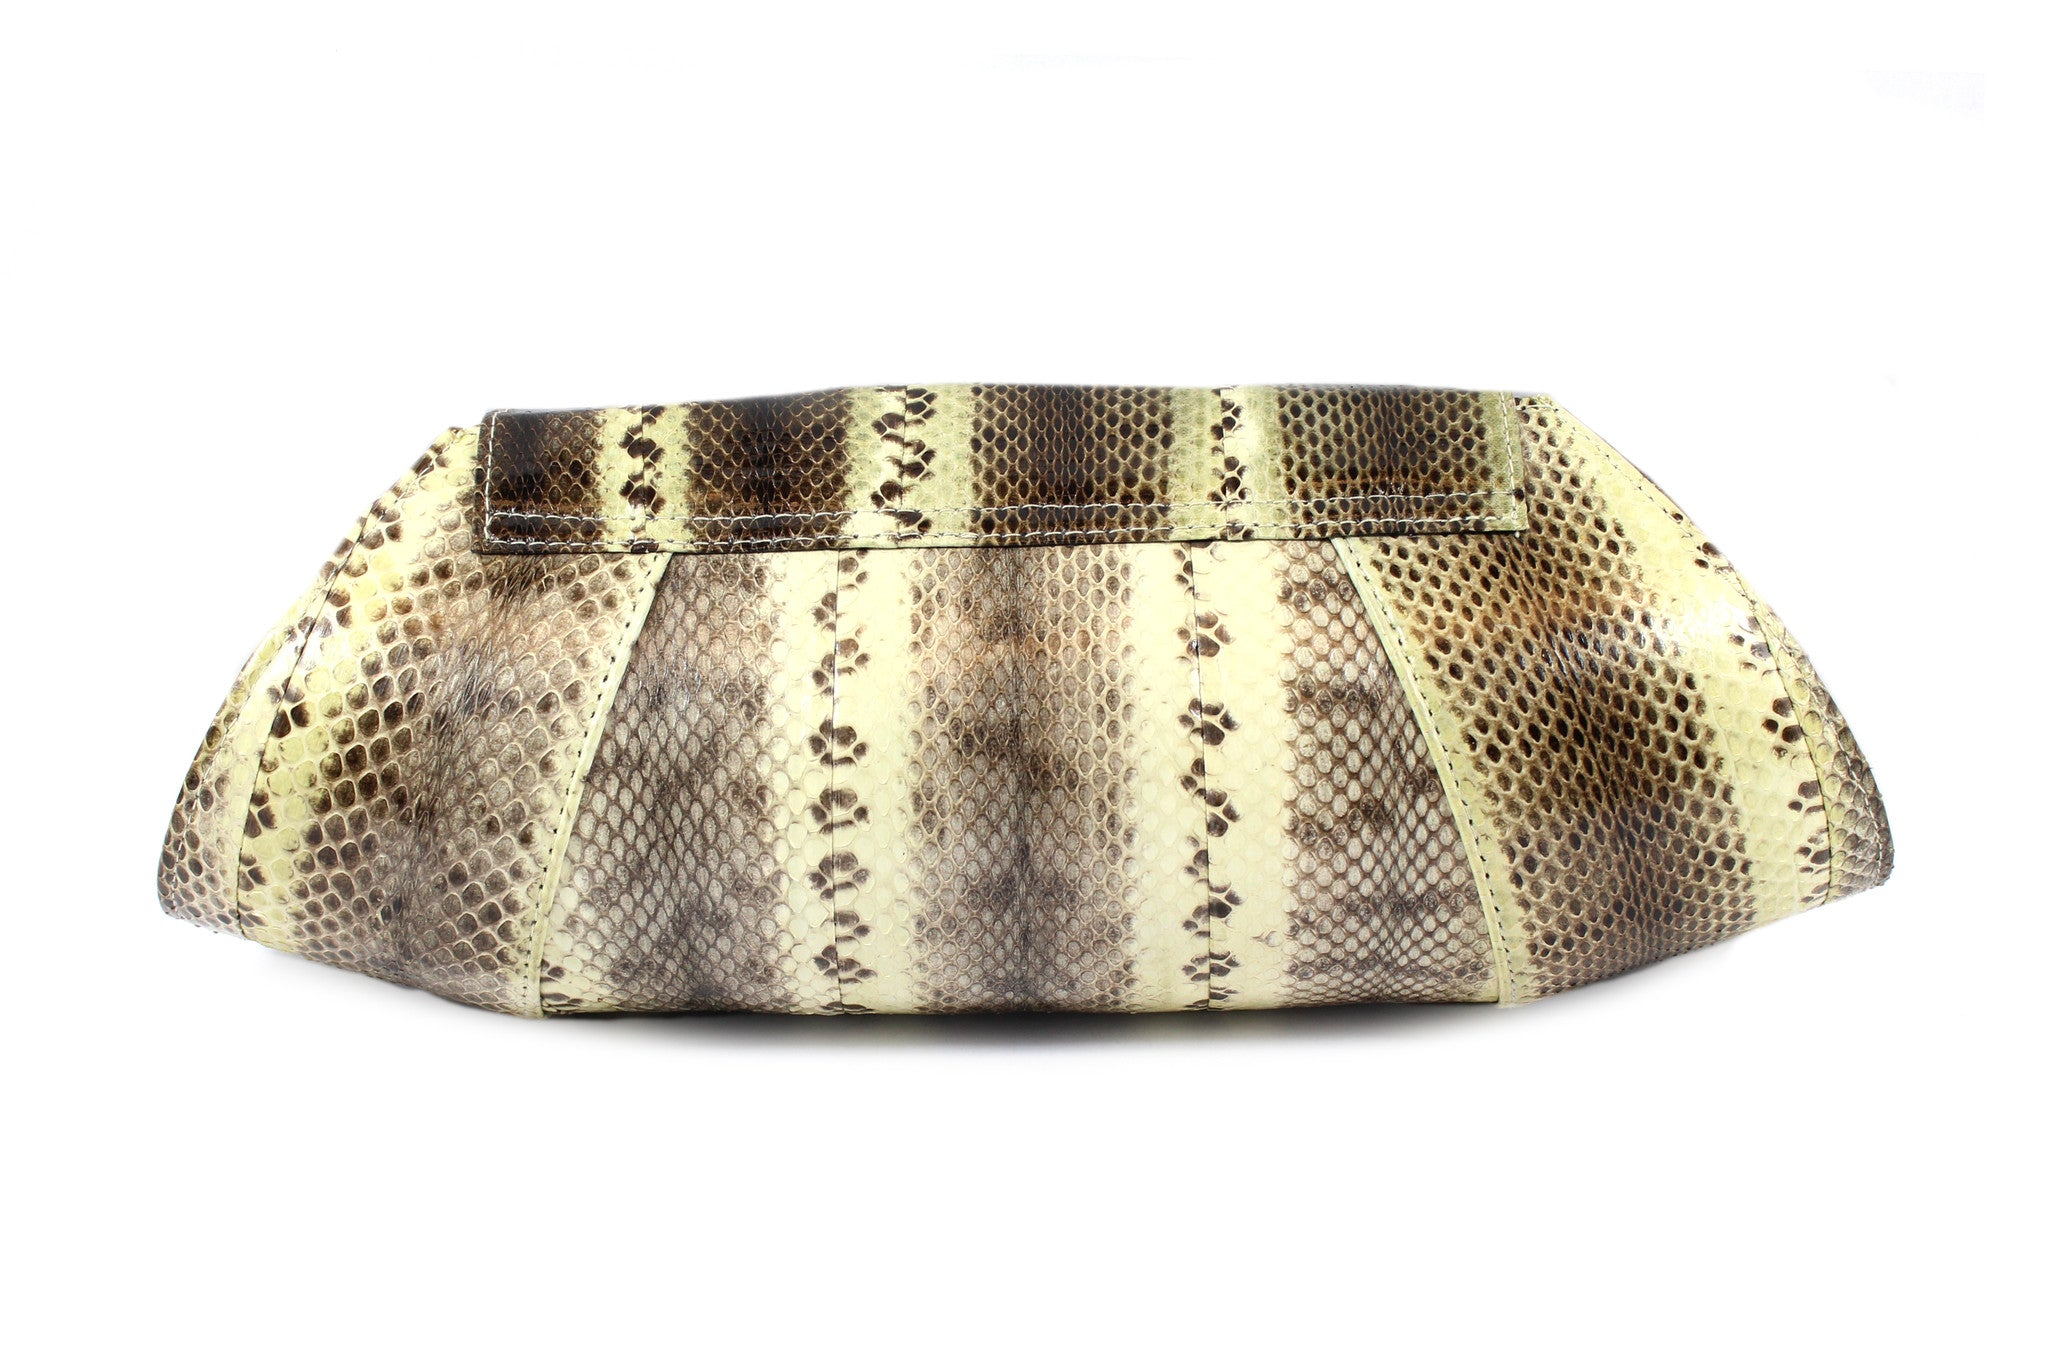 Beirn Large Snakeskin Clutch - Encore Consignment - 3